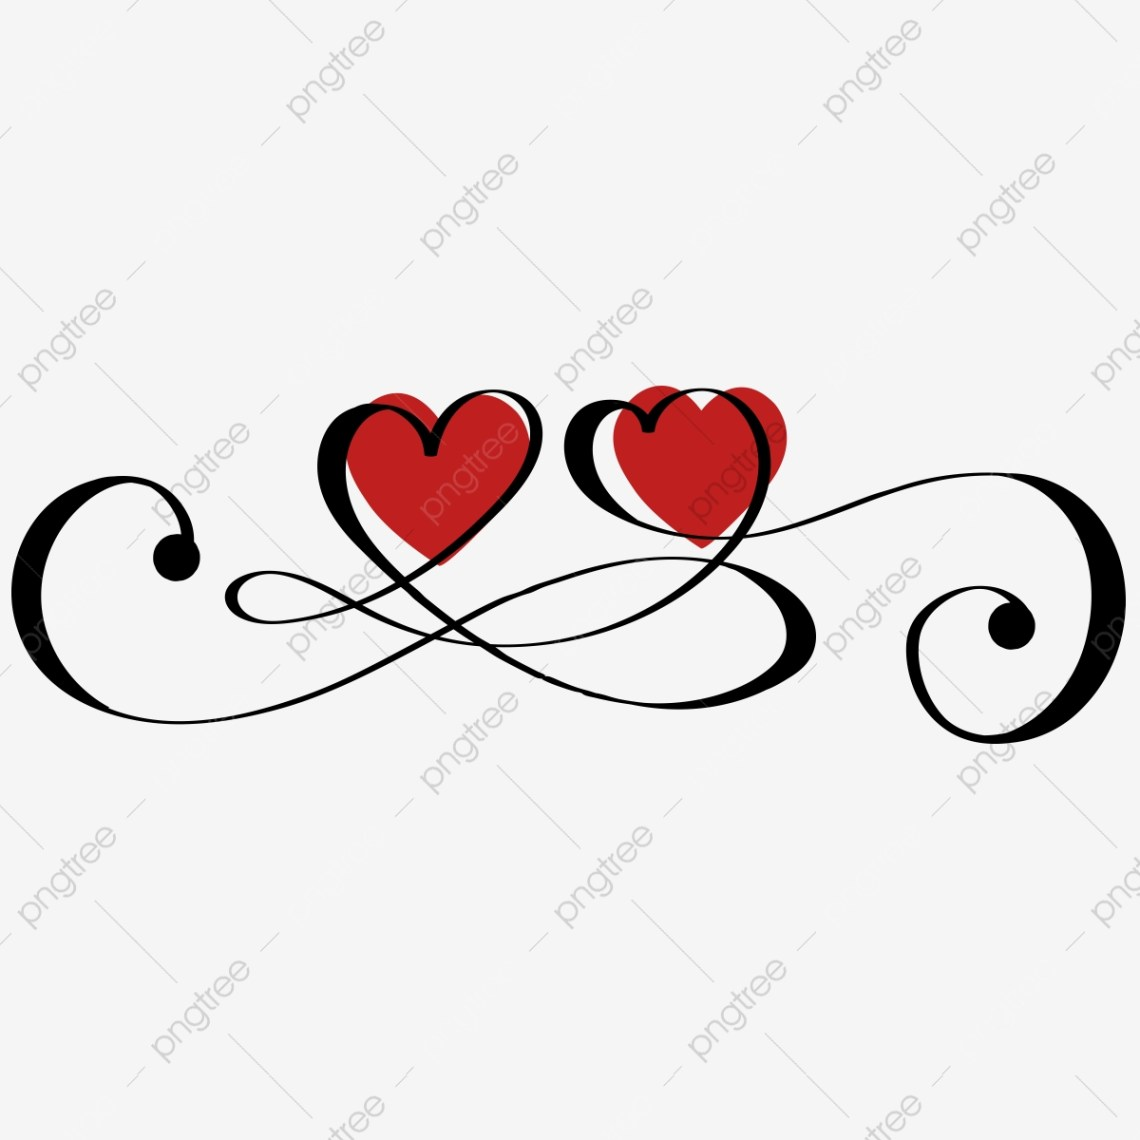 Download Heart Love Infinity With Ornaments Vintage, Heart Love ...